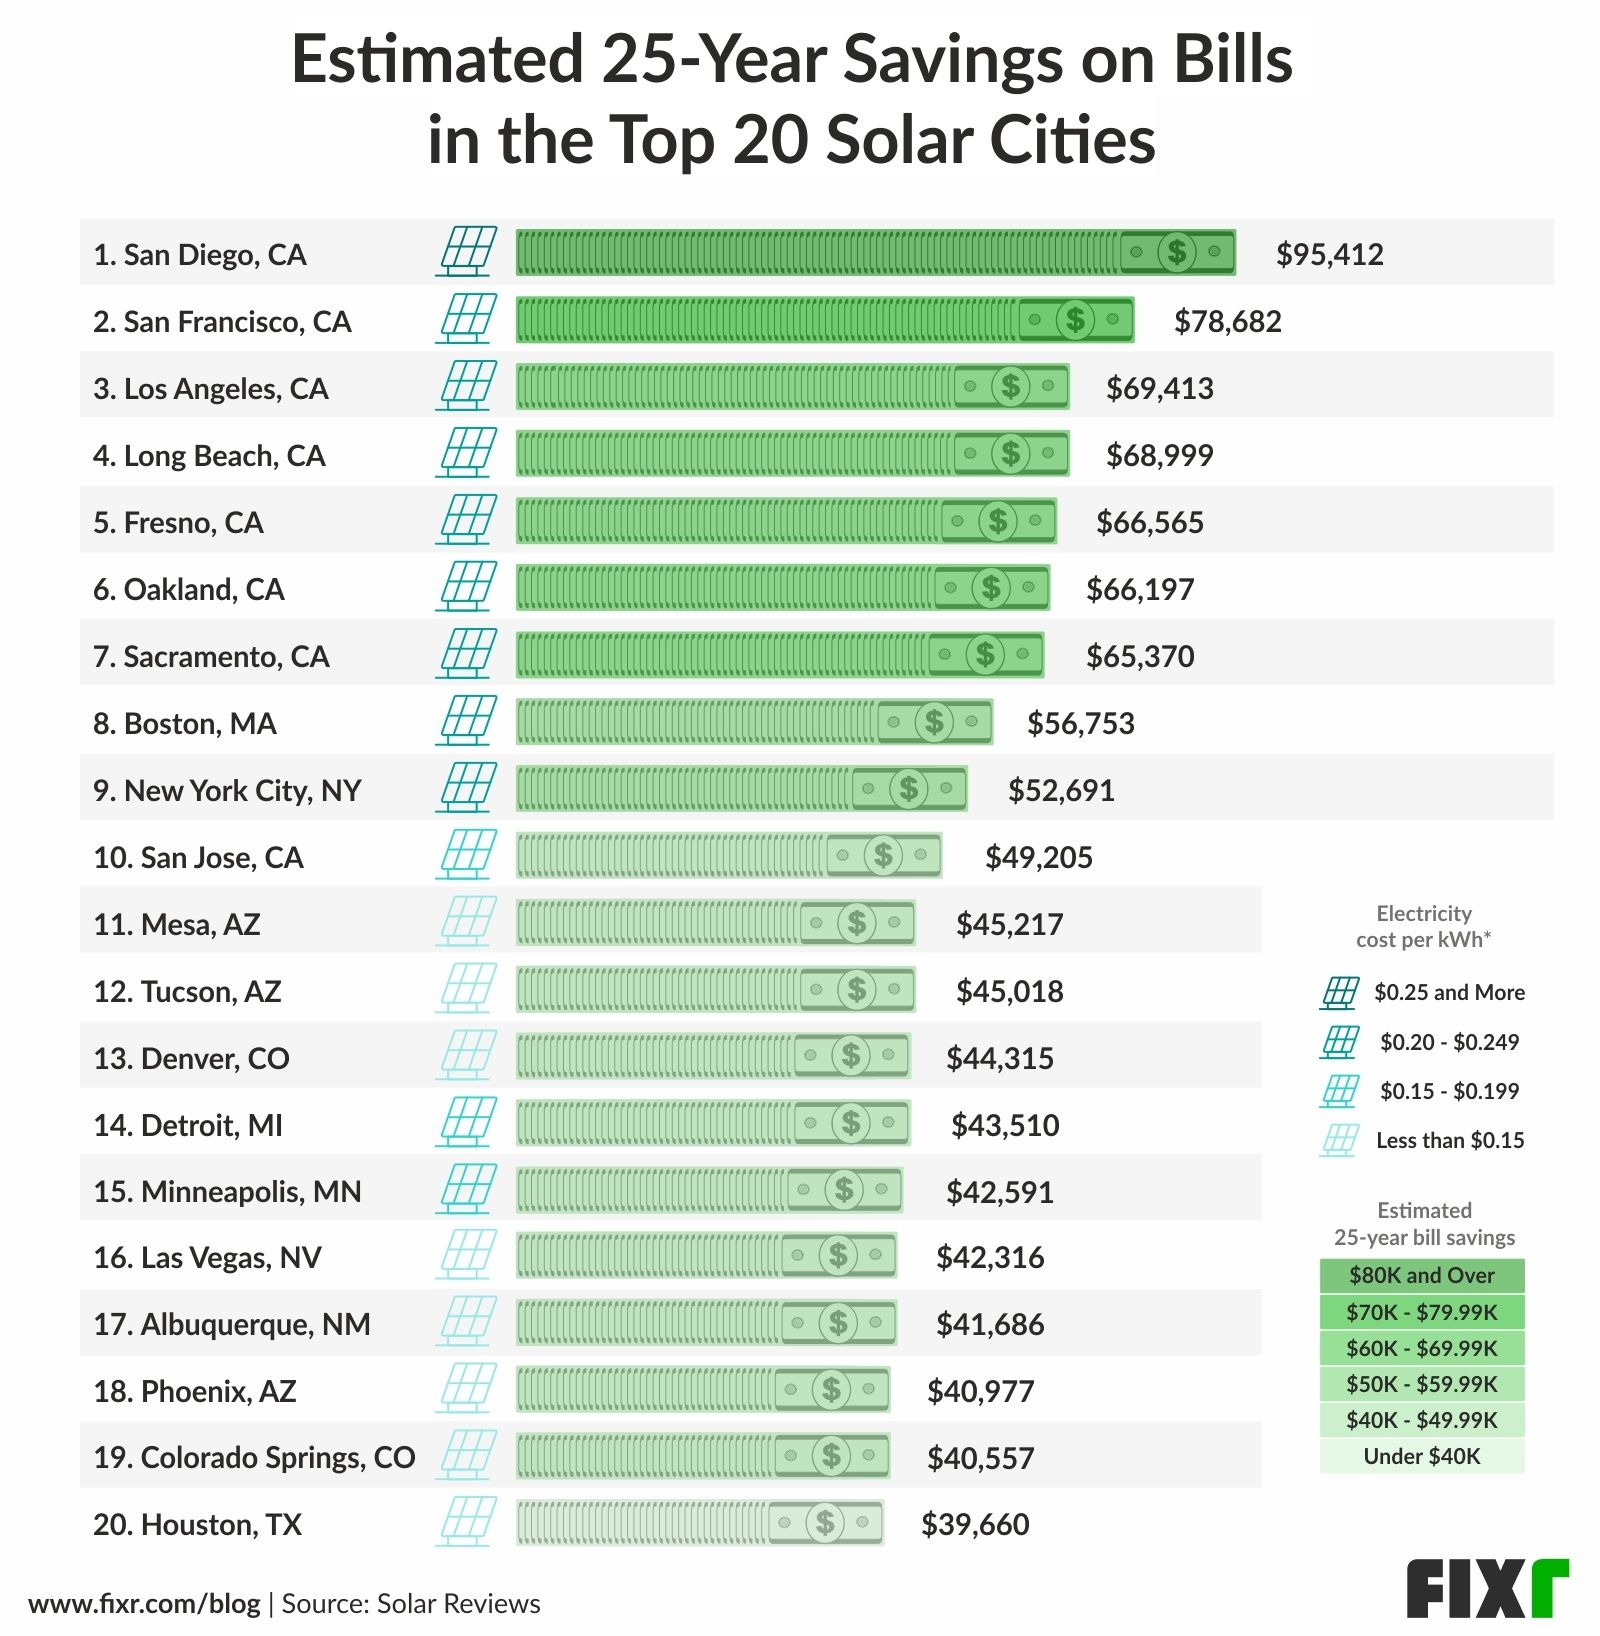 Top solar cities in the U.S. and the estimated savings on energy bills